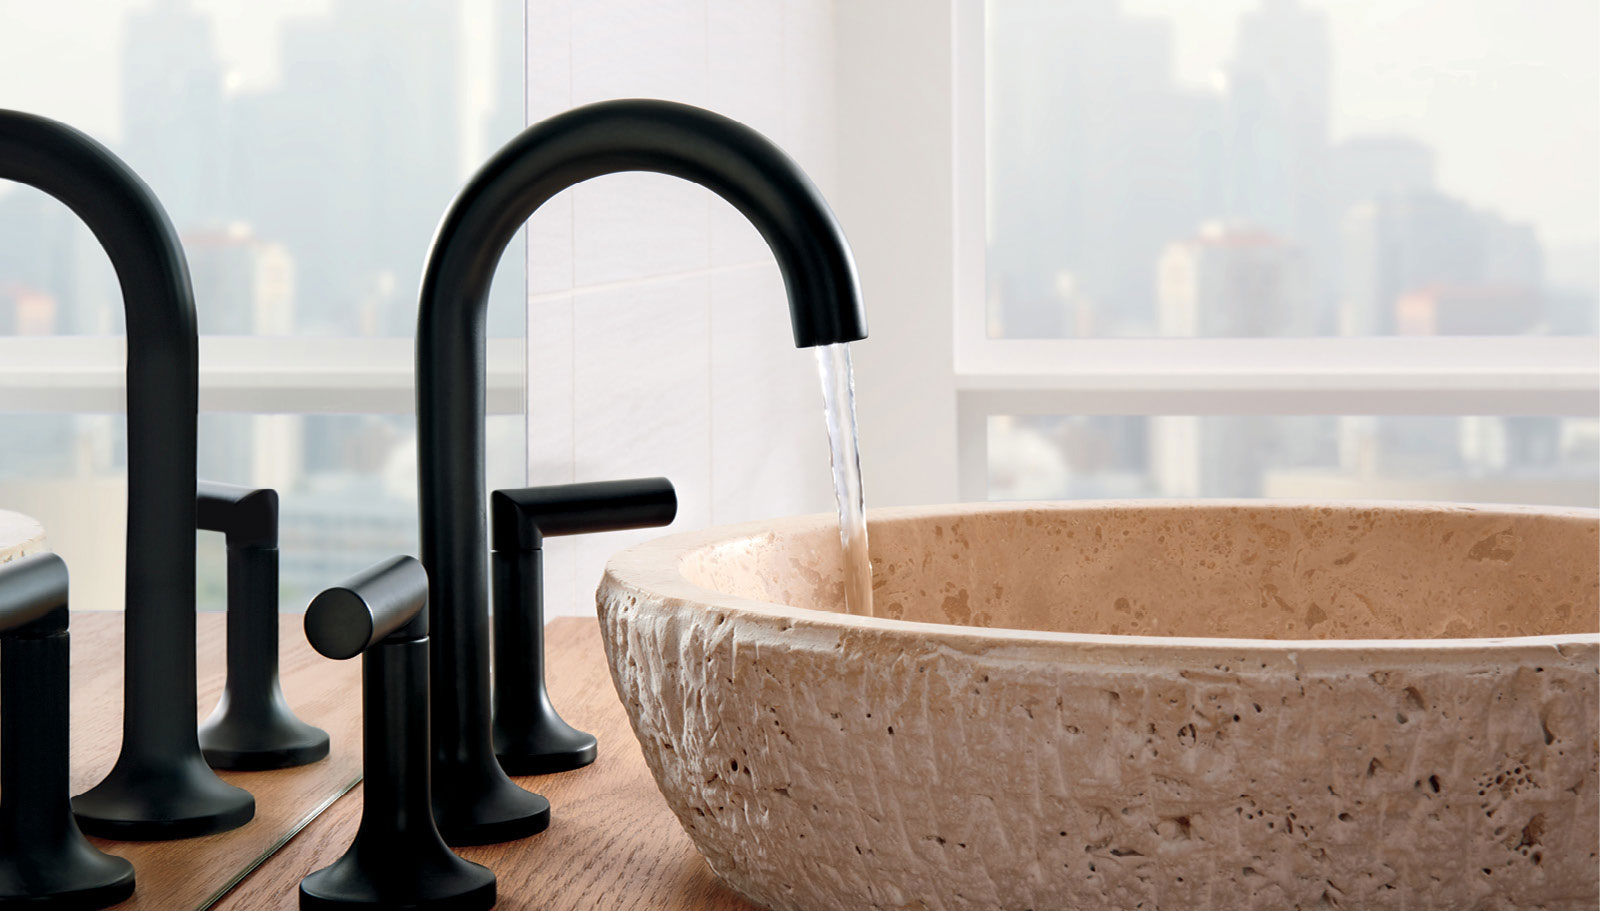 Black Bathroom Faucets - Black Faucets for Bathroom